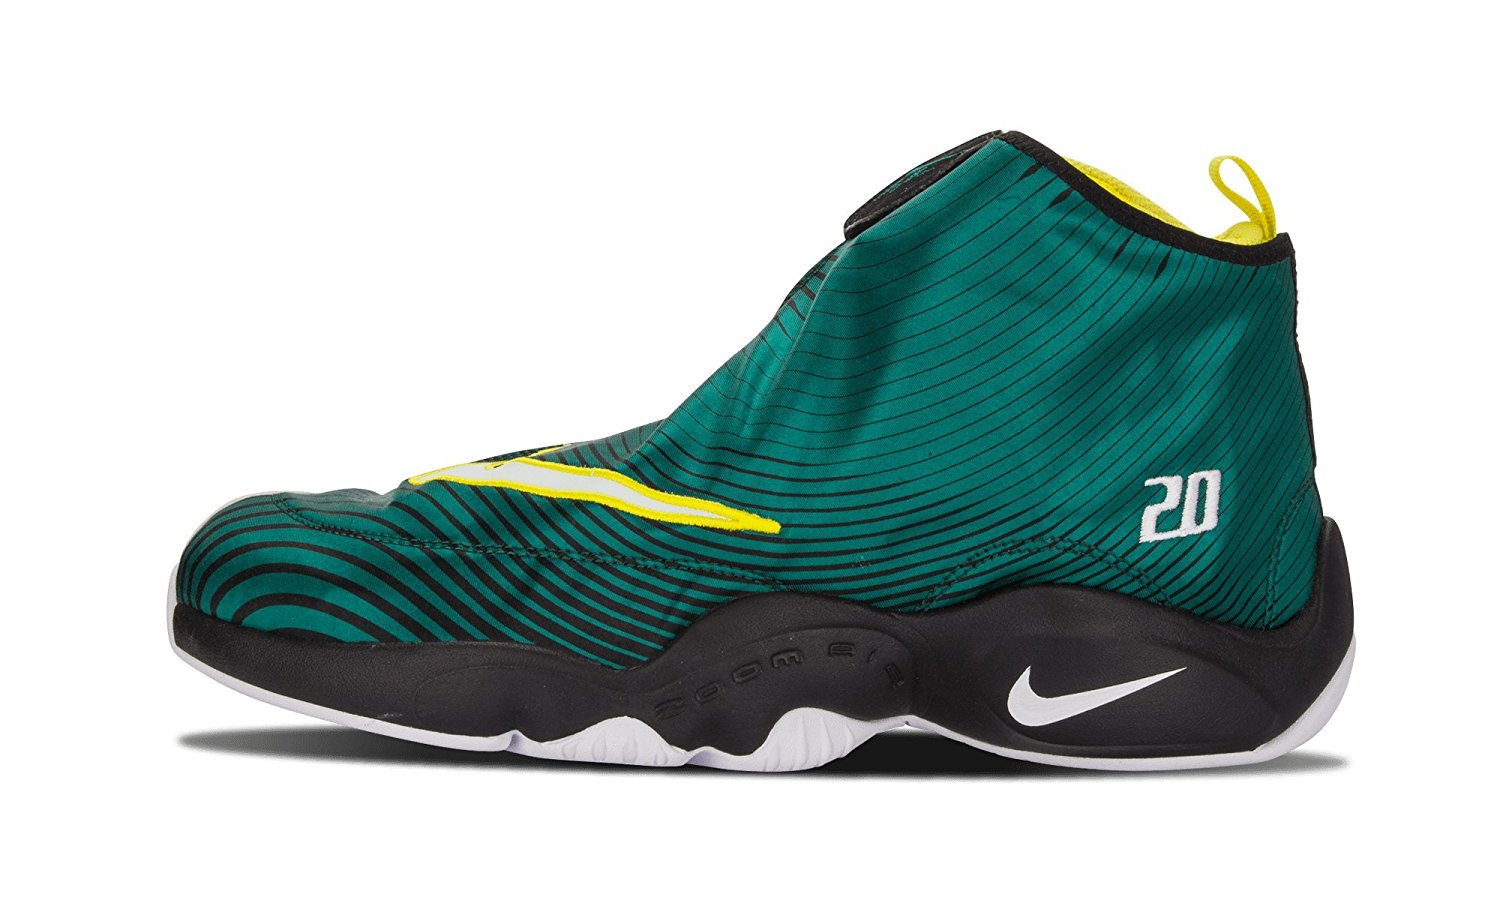 Nike Air Zoom Flight The Glove QS 'Gary Payton' 630773 300